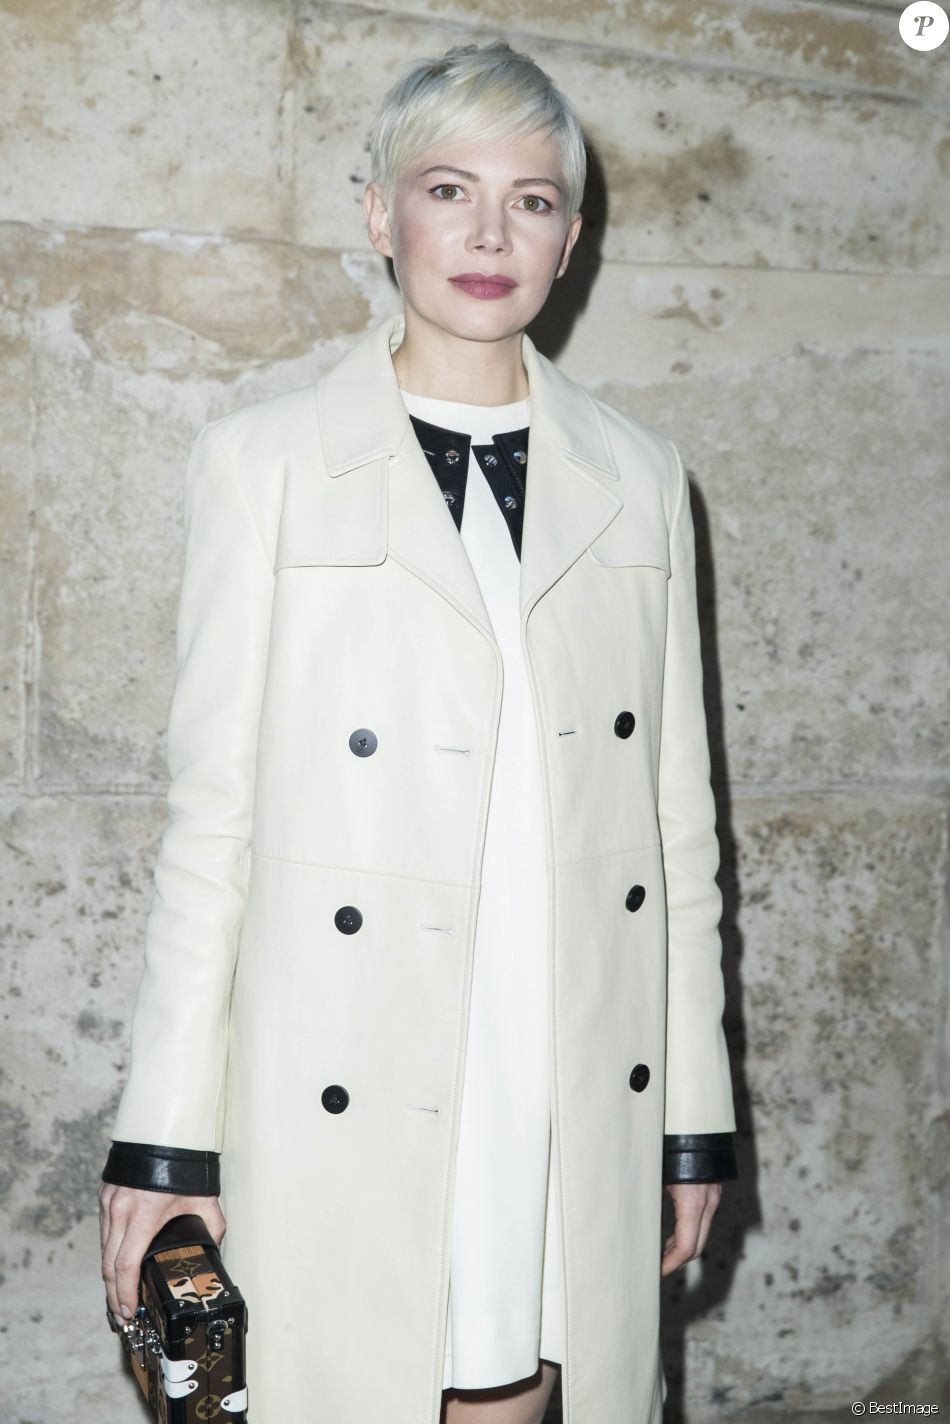 "Michelle Williams - Photocall du défilé de mode PAP Femme automne-hiver 2018/2019 "" Louis Vuitton "" à Paris le 6 mars 2018 © Olivier Borde / Bestimage"